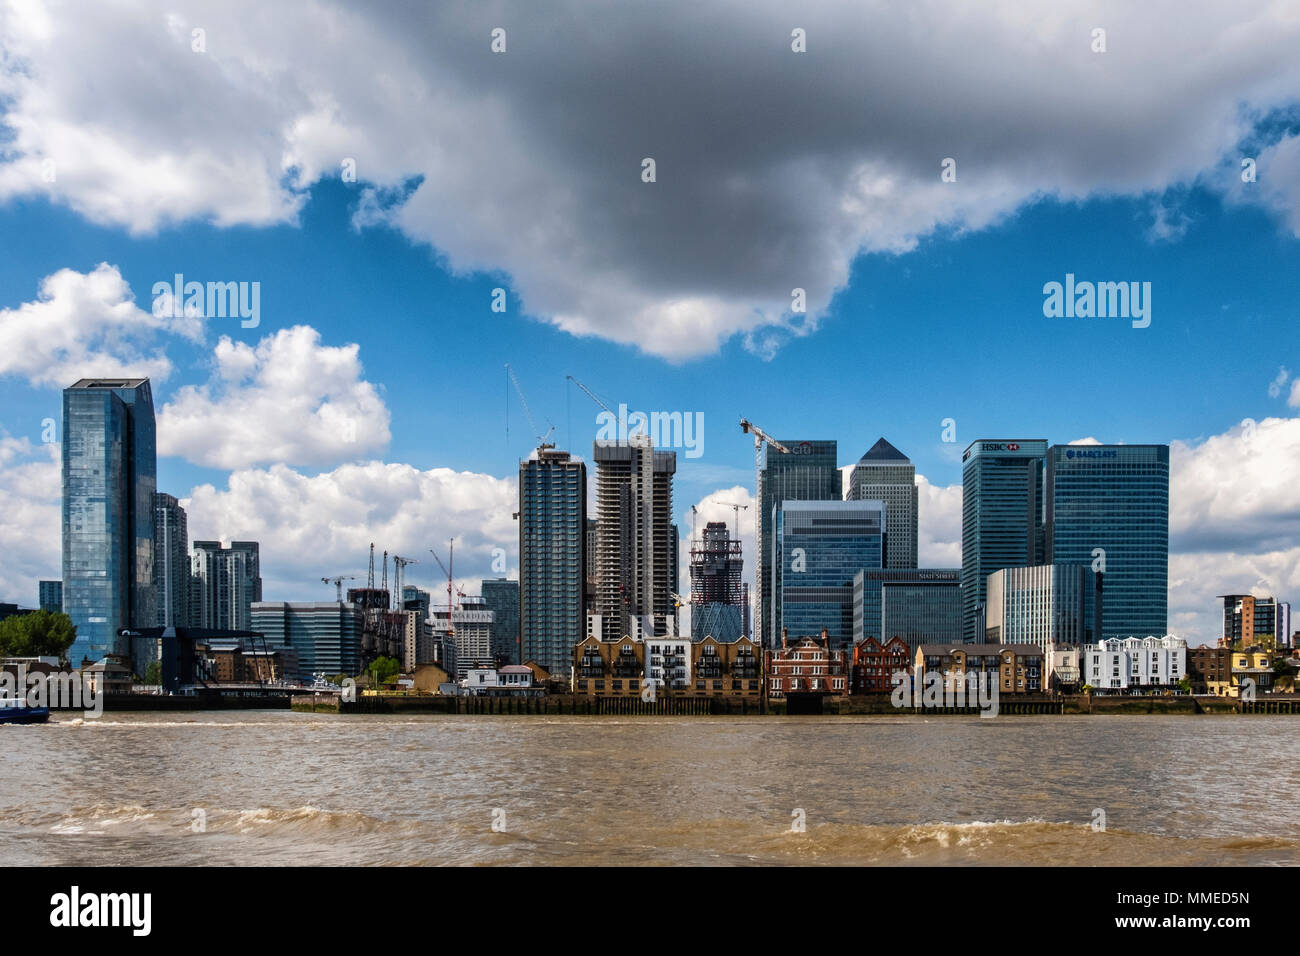 London, Isle of Dogs City skyline view. New-build luxury apartment buildings under construction,Canary Wharf Financial district & traditional old rive - Stock Image